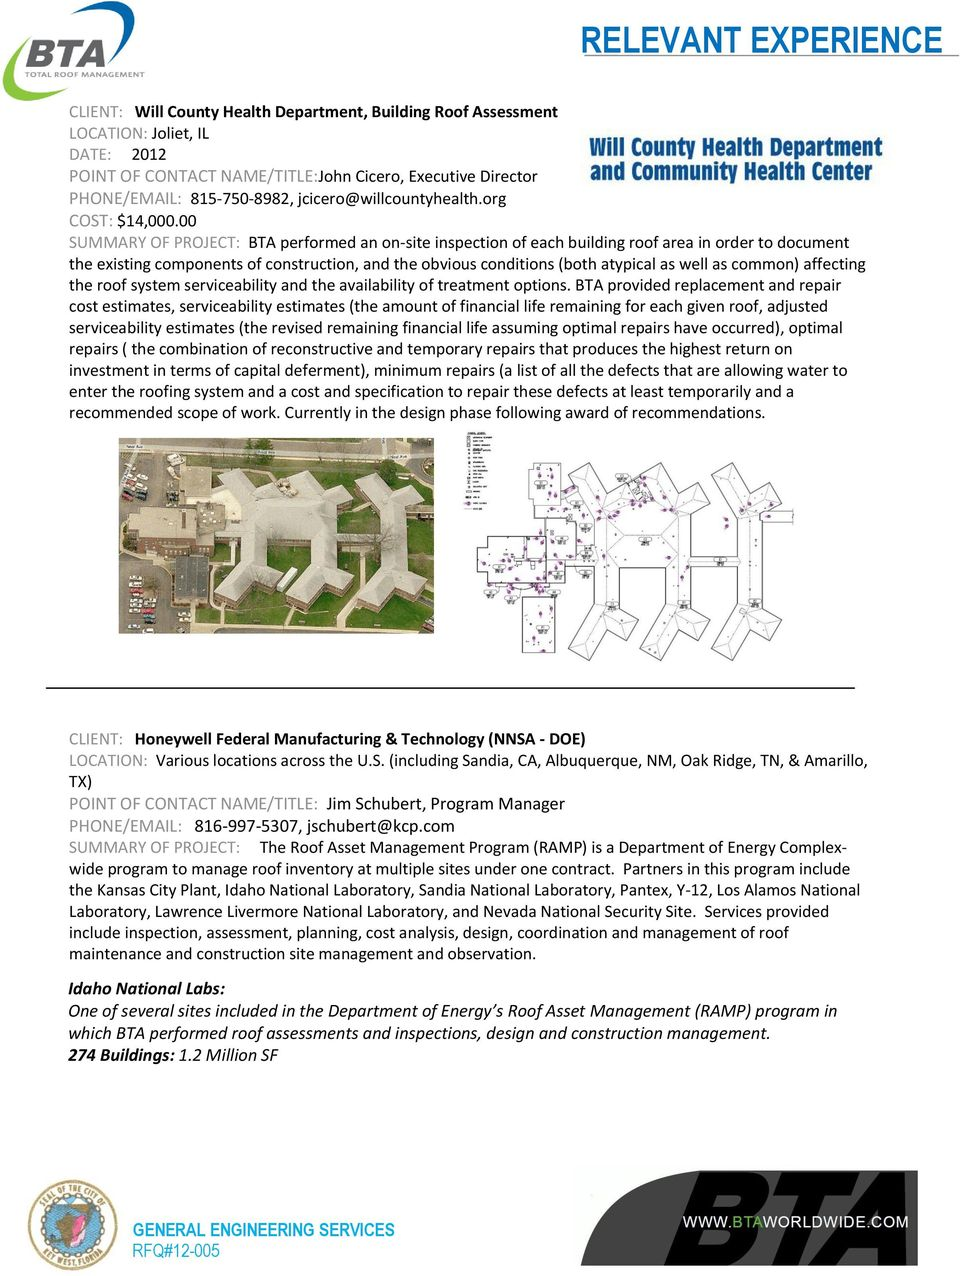 RFQ FOR GENERAL ENGINEERING SERVICES: CIVIL ENGINEERING- ROOF - PDF